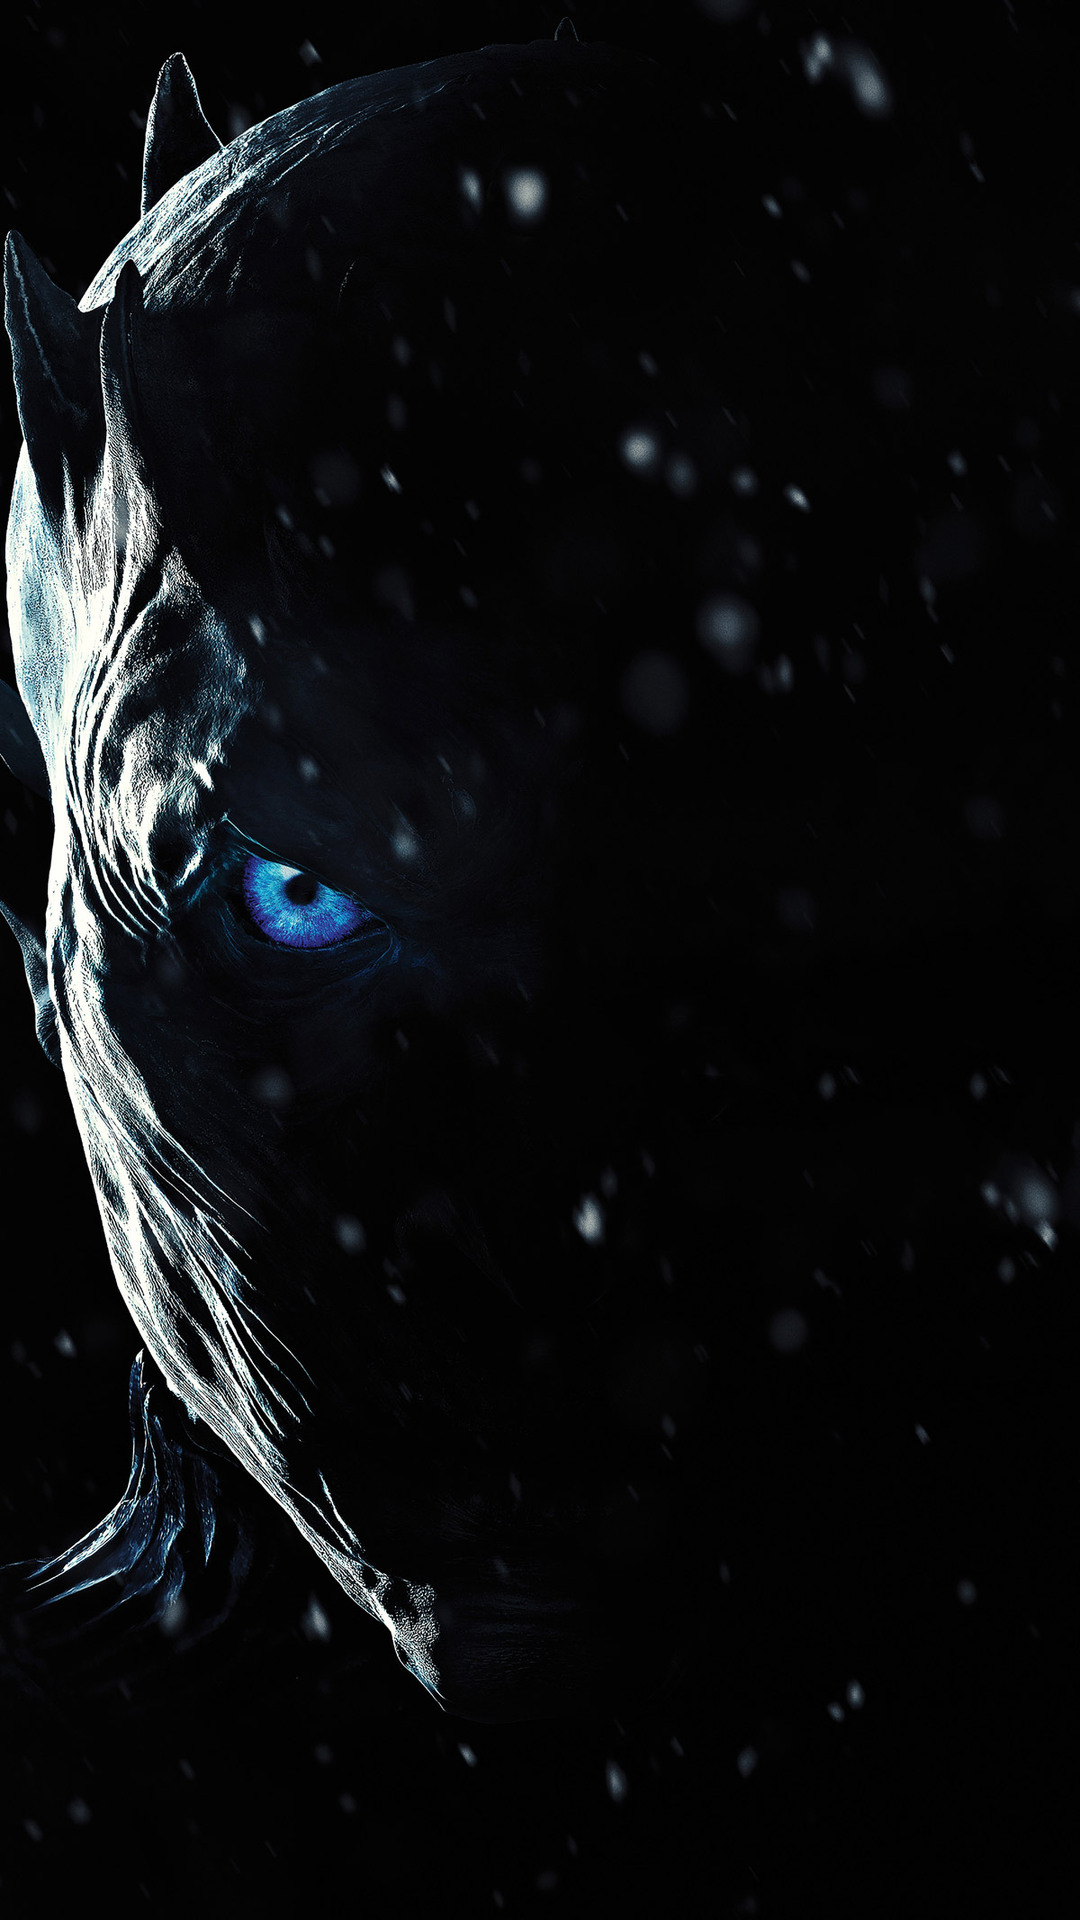 game-of-thrones-season-7-white-walkers-g6.jpg